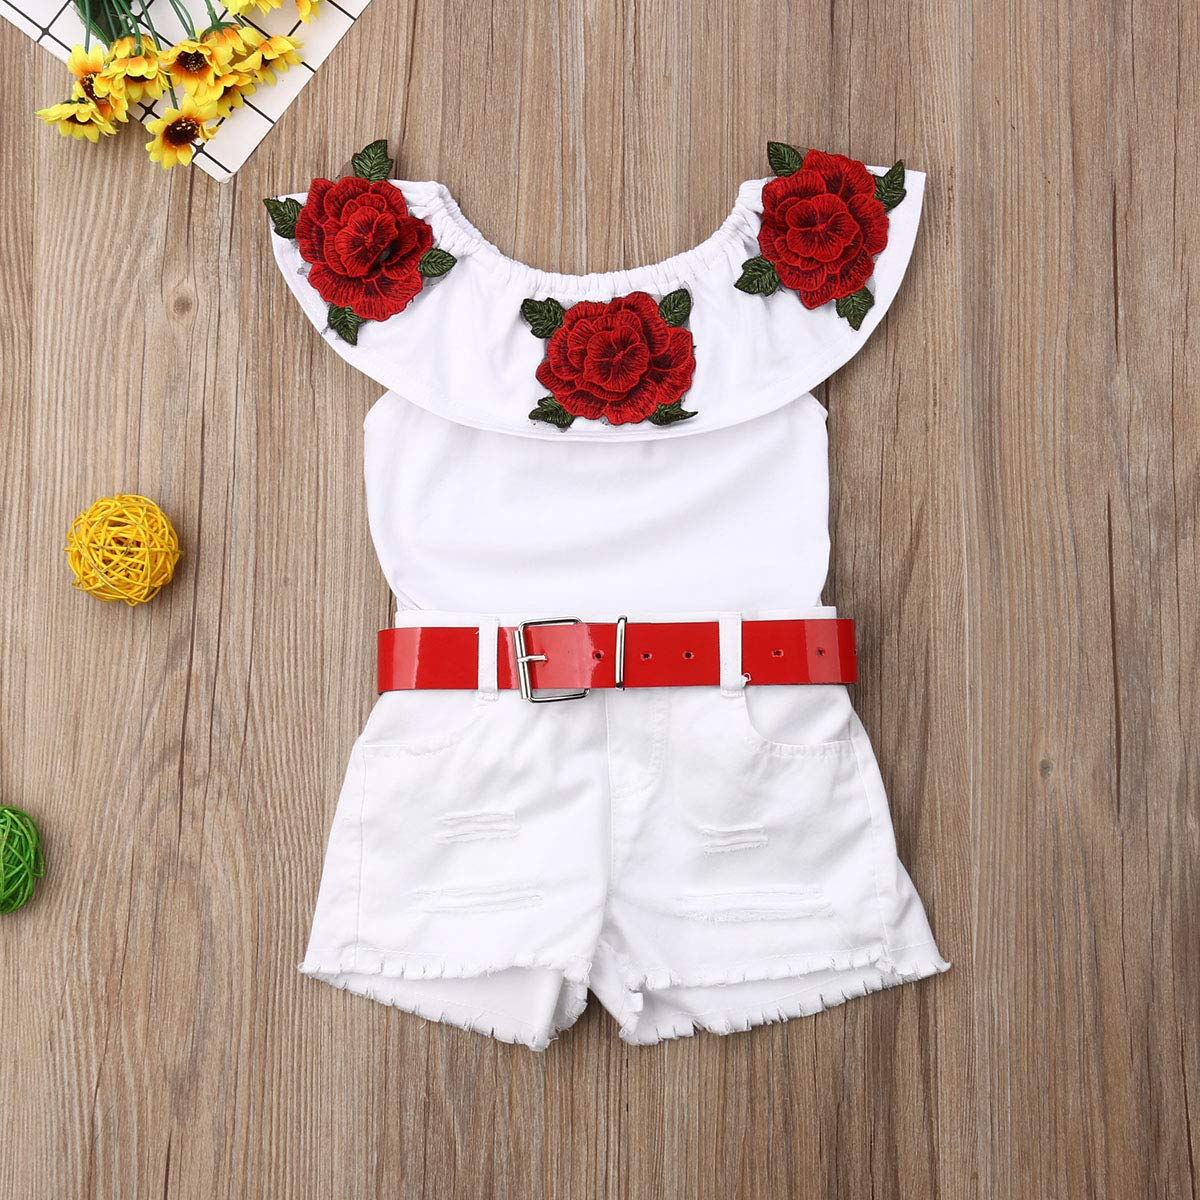 Toddler Kid Girl Fashion Summer Outfits Off Shoulder Rose Floral Ruffle Cotton Tops Waist Belt Shorts 1-7 Years